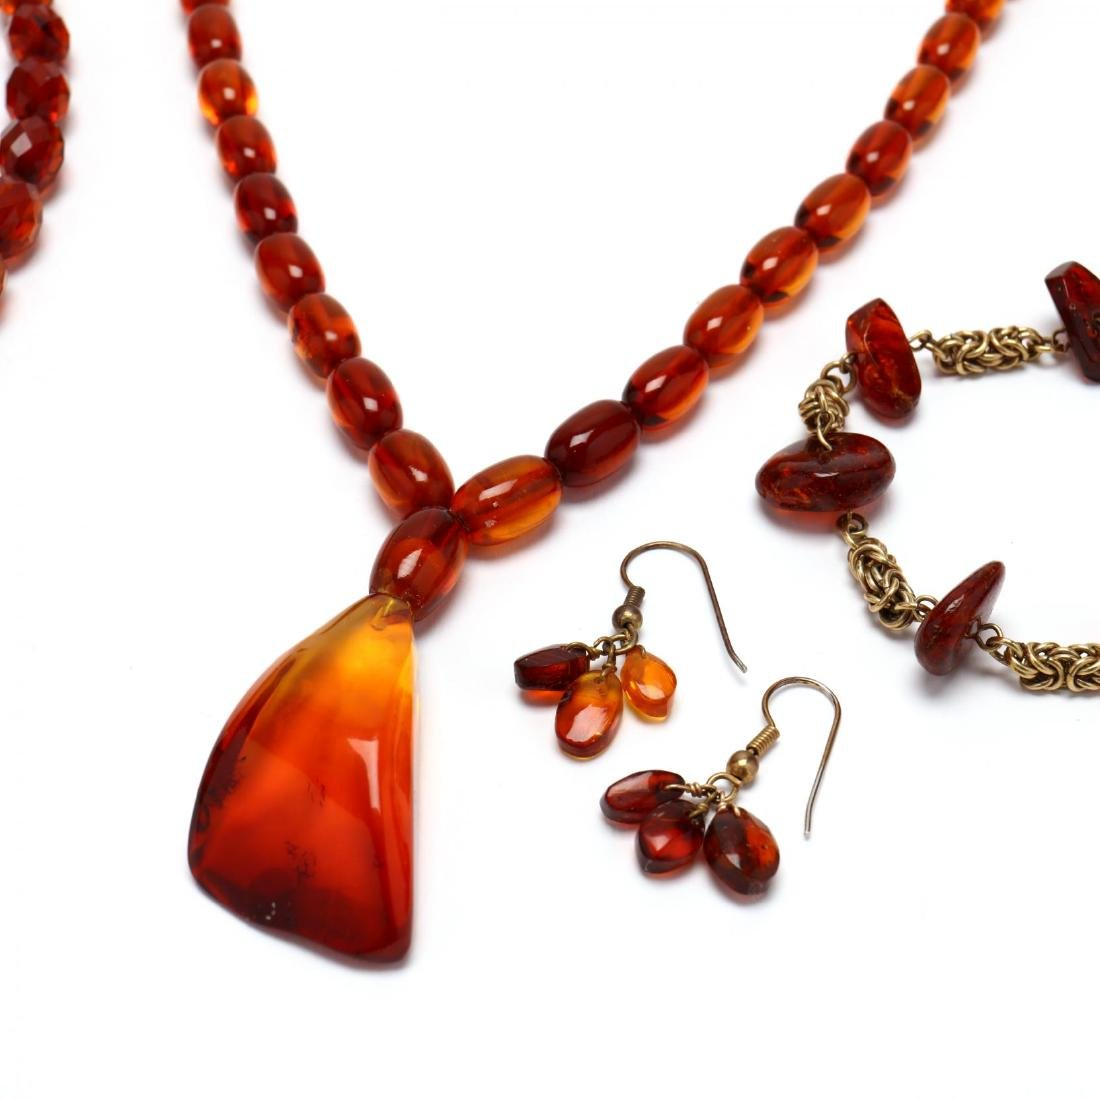 Group of Amber Bead Jewelry - 4